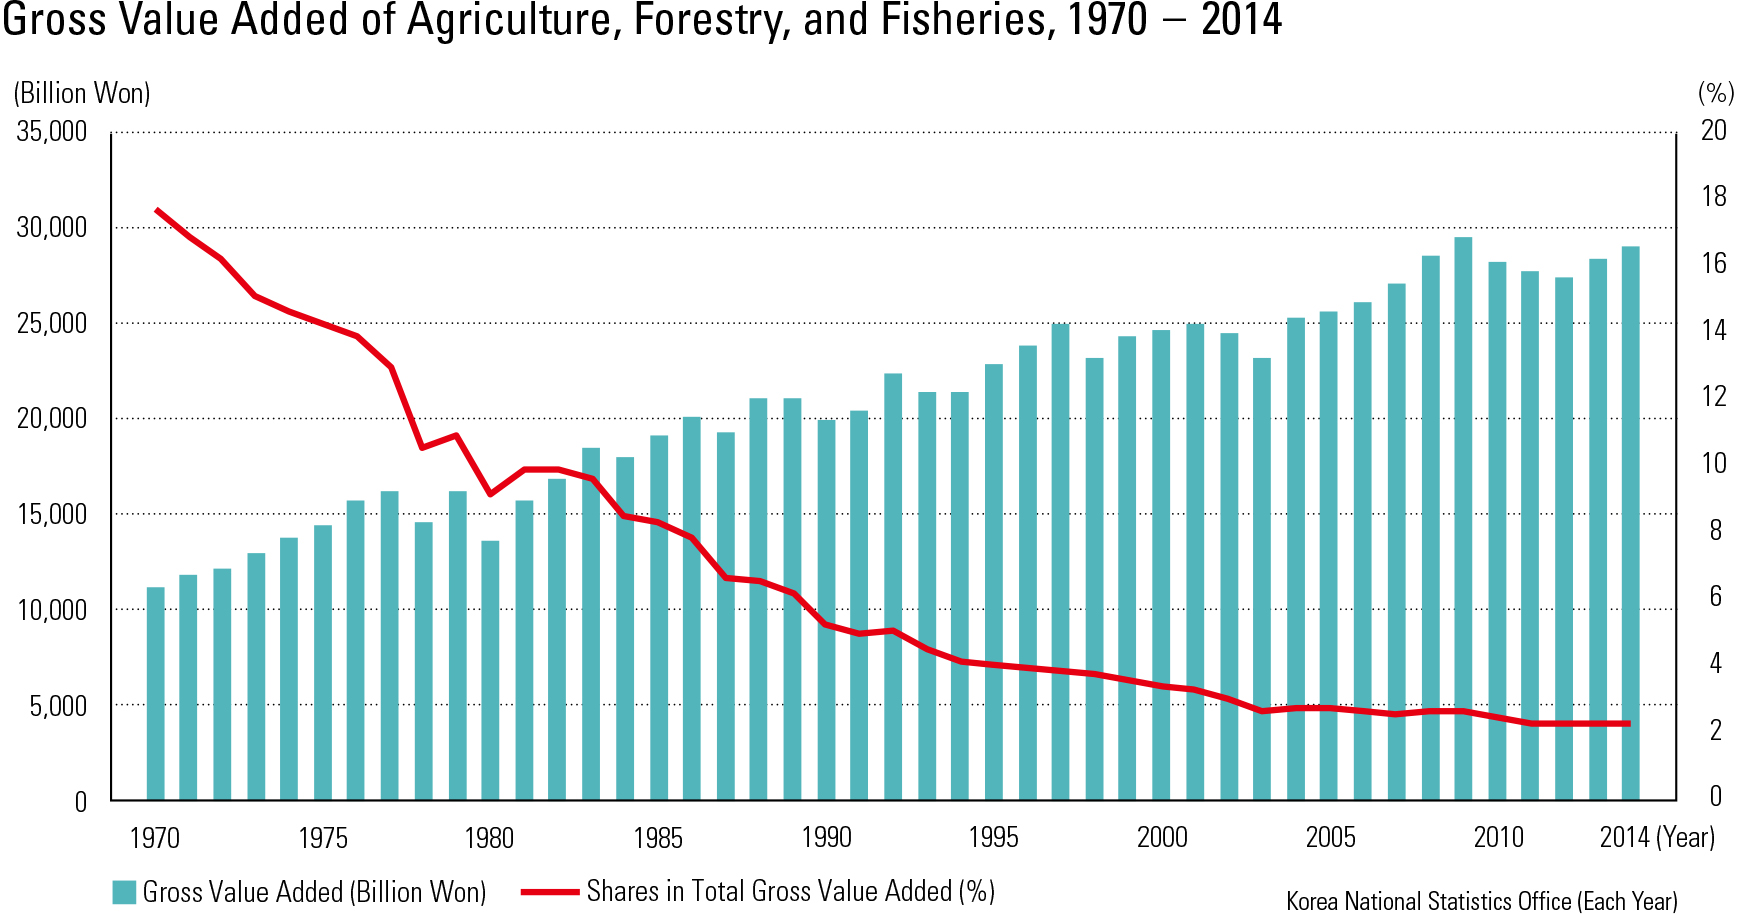 Gross Value Added of Agriculture, Forestry, and Fisheries, 1970 – 2014